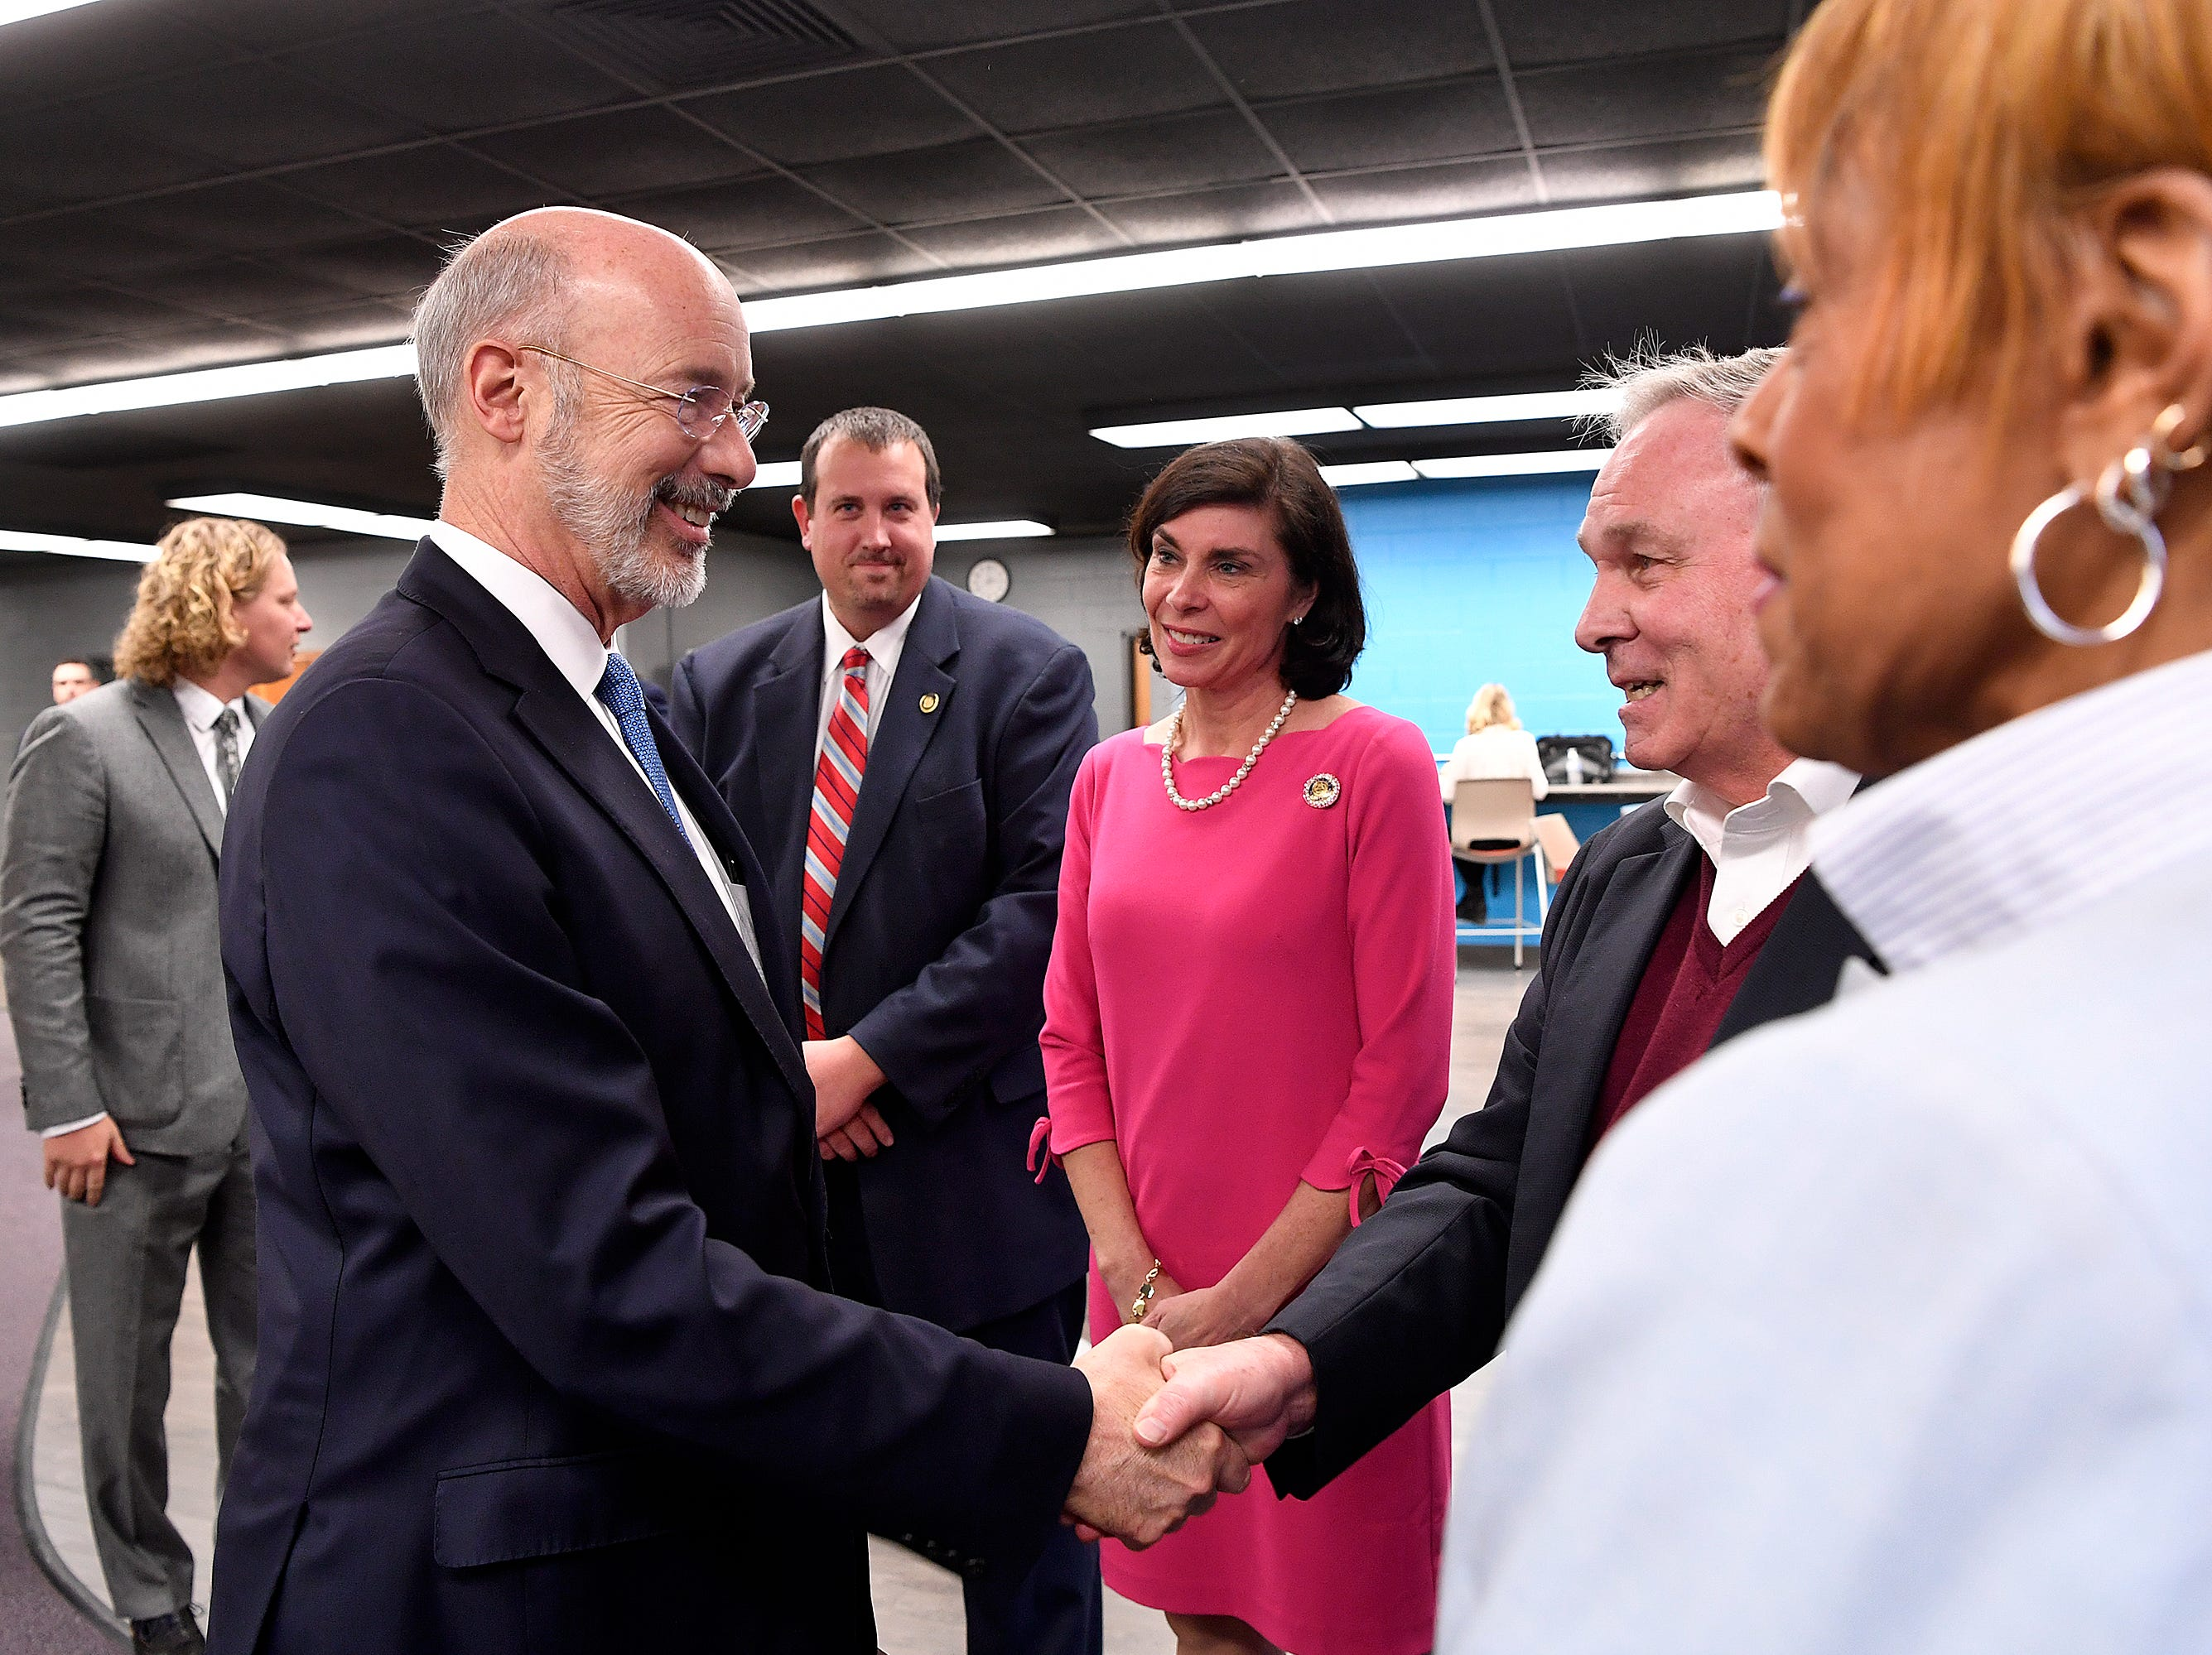 Governor Tom Wolf announces a $4.5 billion initiative to provide improvements to infrastructure including high-speed internet, storm preparedness and disaster recovery and more, Thursday, February 7, 2019 at Dover High School.John A. Pavoncello photo